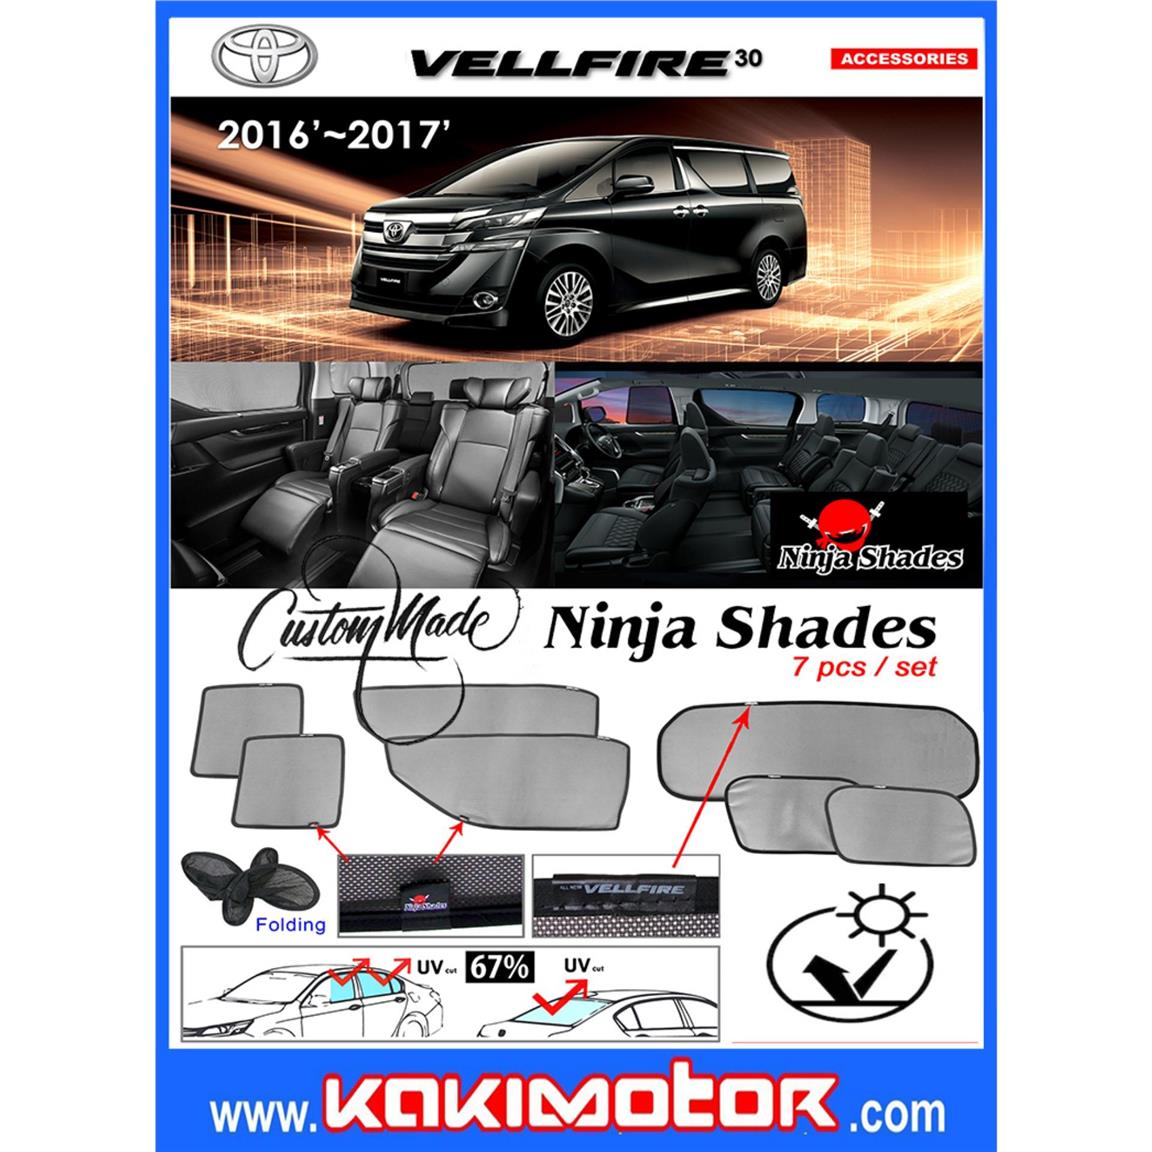 Ninja Sunshade for Toyota Vellfire 30 2016-2017 (2+1)